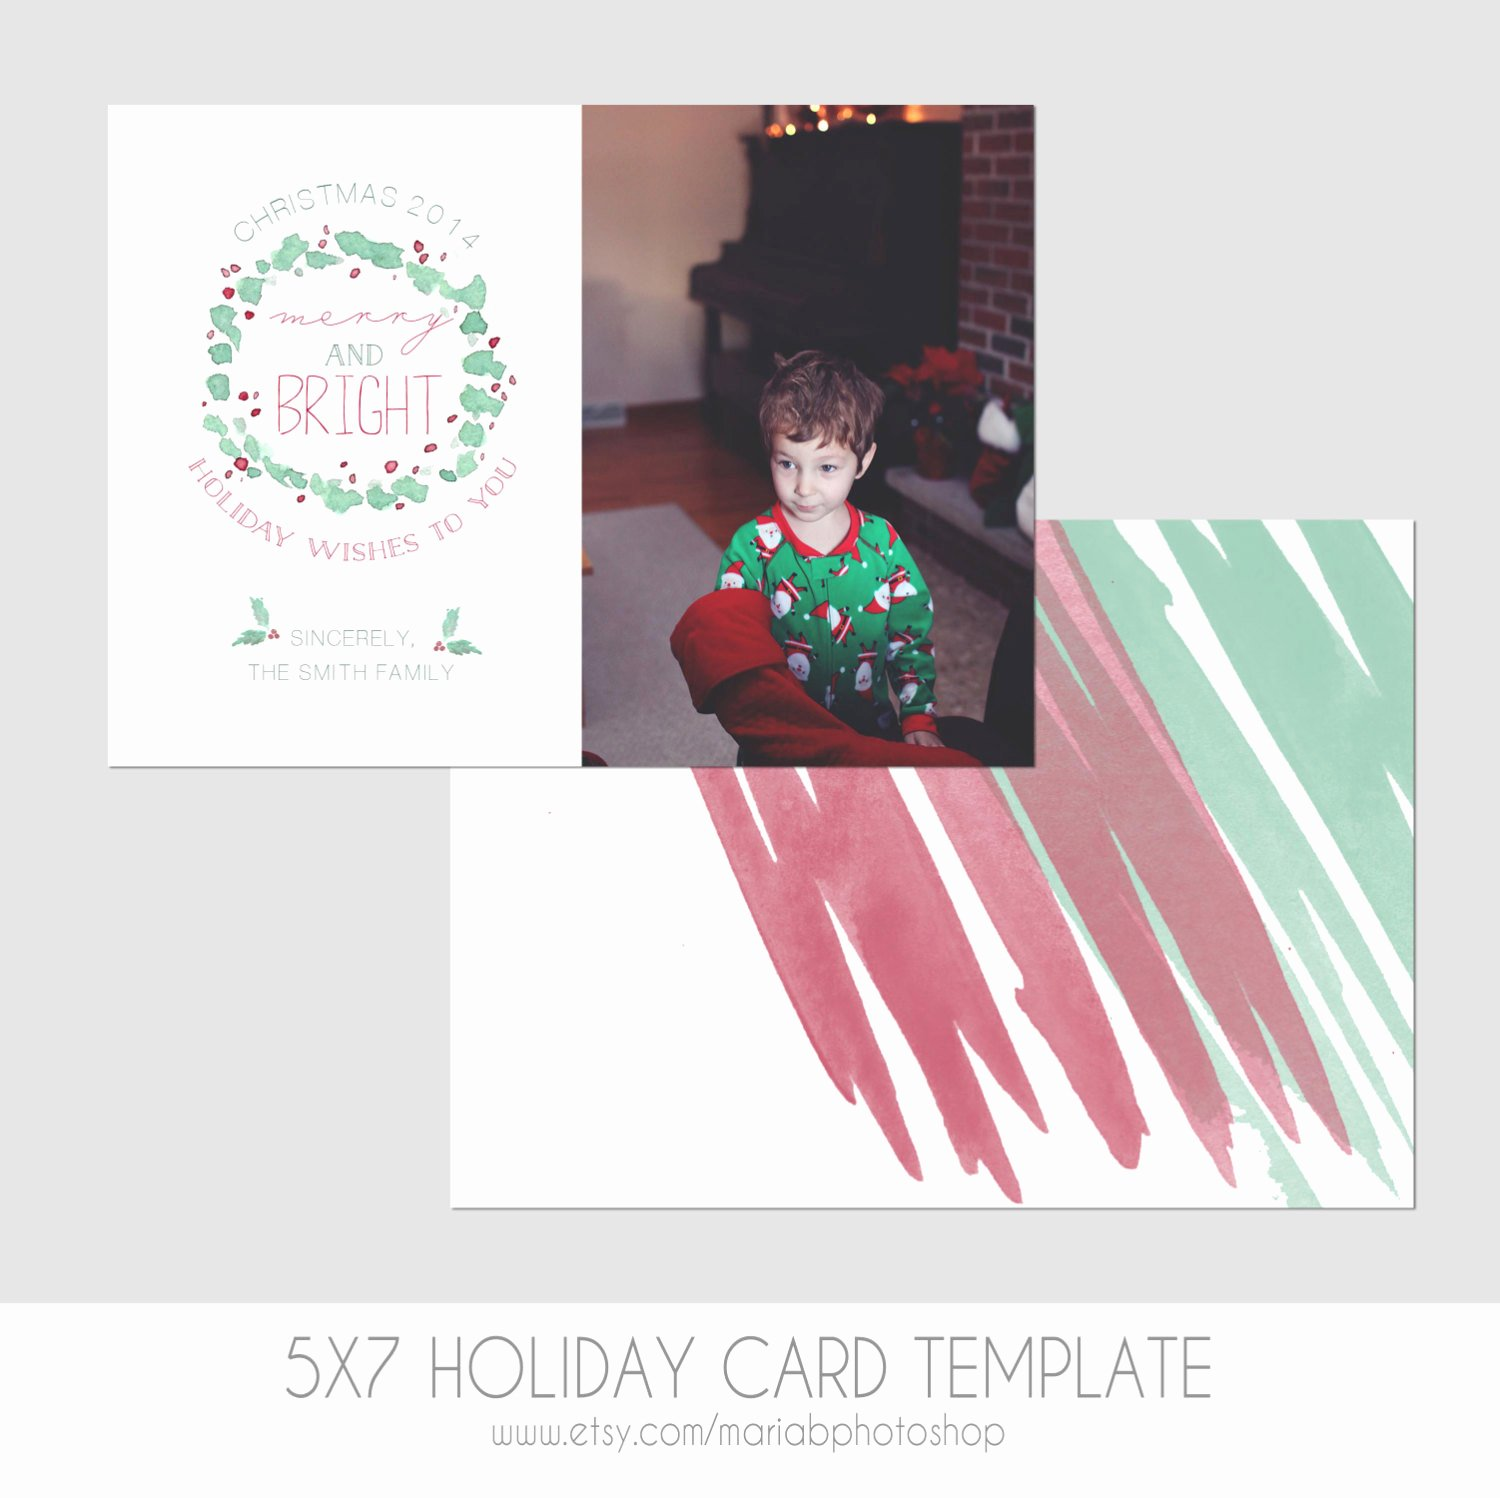 5x7 Postcard Mailing Template Luxury 5x7 Christmas Card Template Front and Back Modern